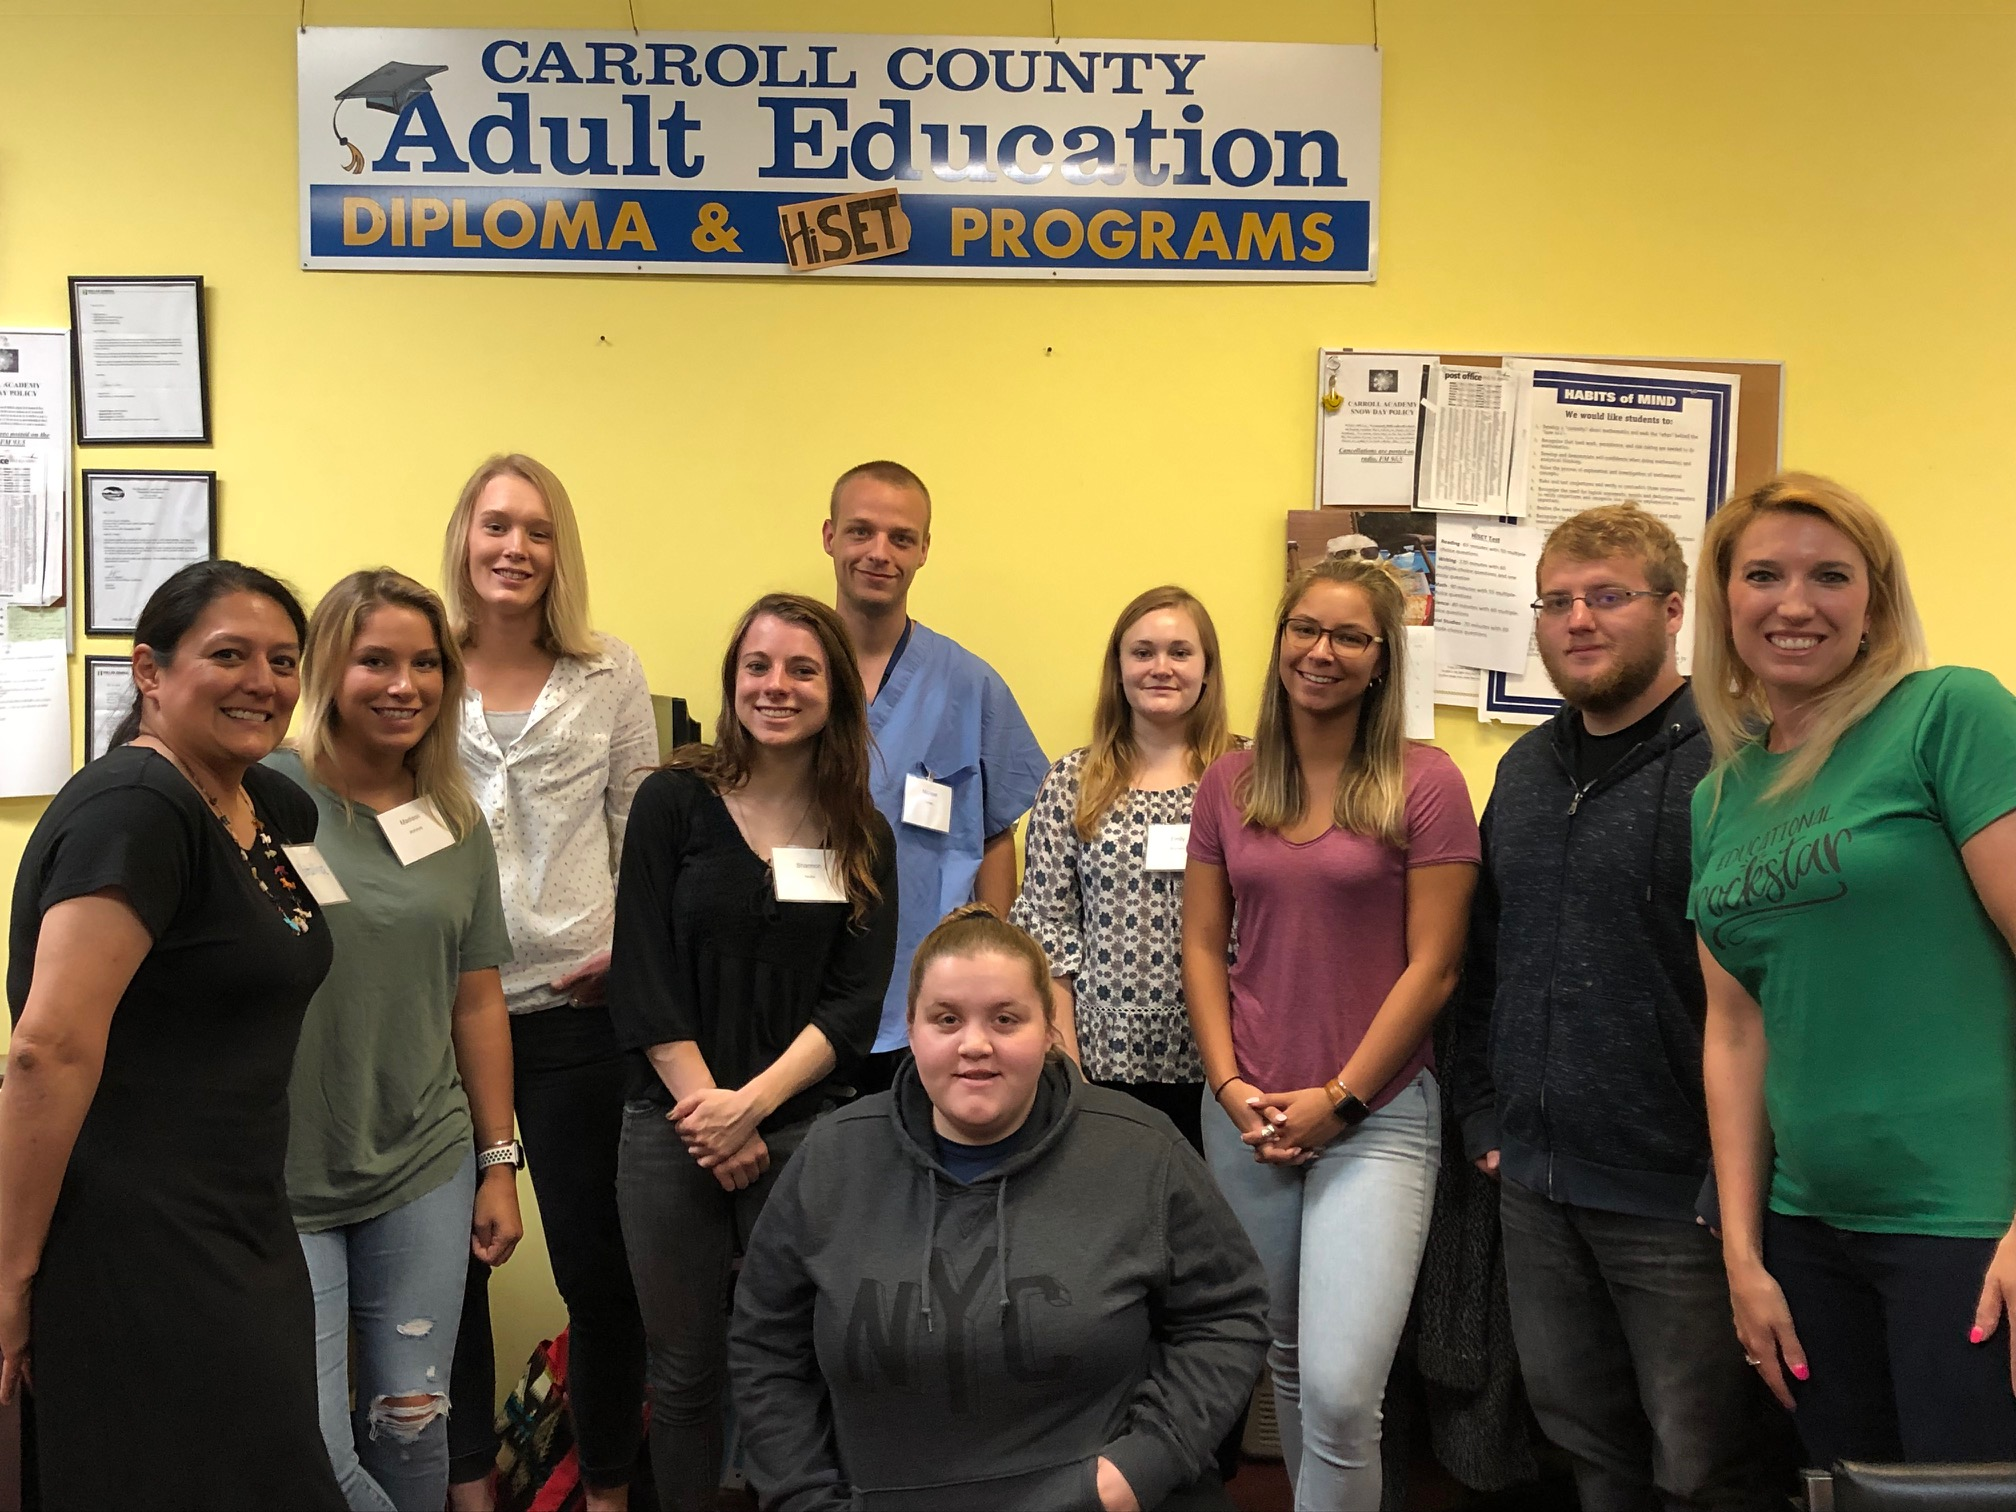 Young Adults Raising Awareness in Carroll County